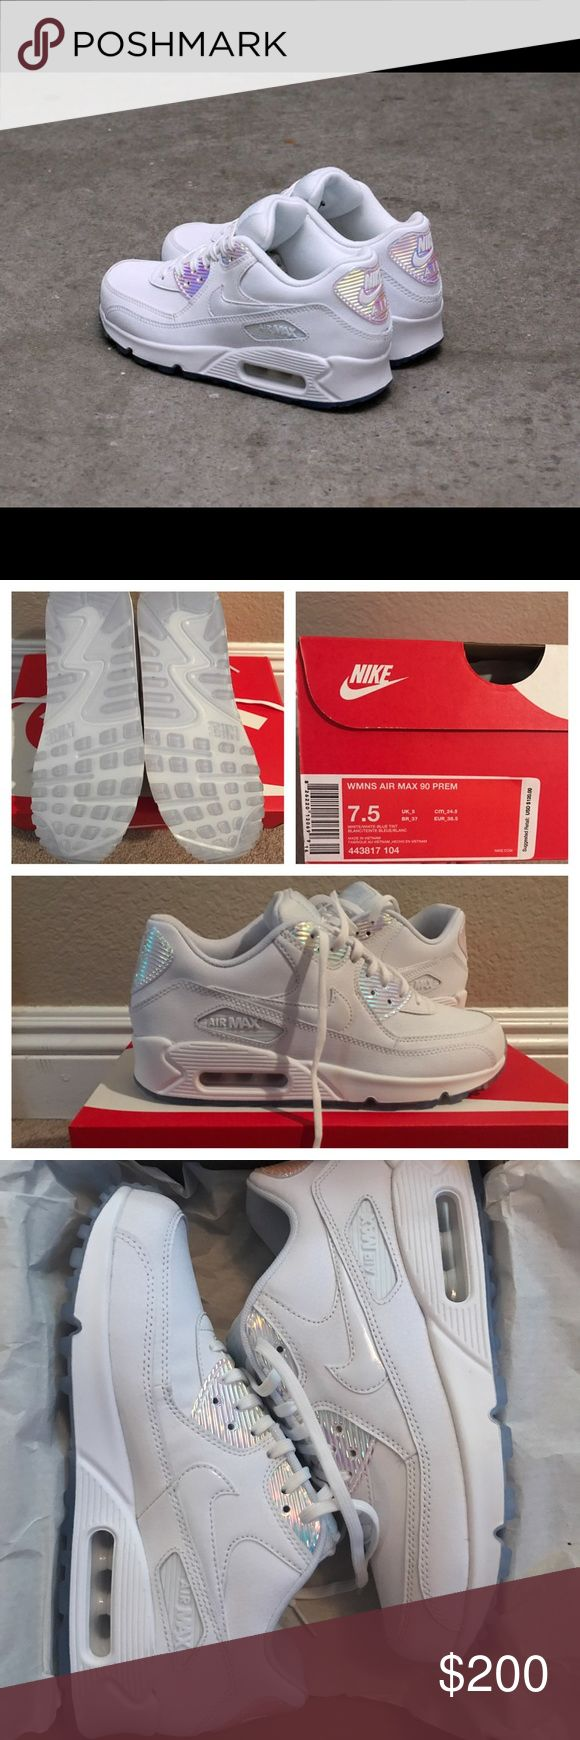 DS RARE Nike Air Max 90 Premium White Halographic DEADSTOCK. Never been worn before. Womens Nike air max 90s in white and holographic / iridescent details. Comes with original box. If you need additional pictures please let me know I tried to fit as much as I could. These are size 7.5 in women's. Nike Shoes Sneakers